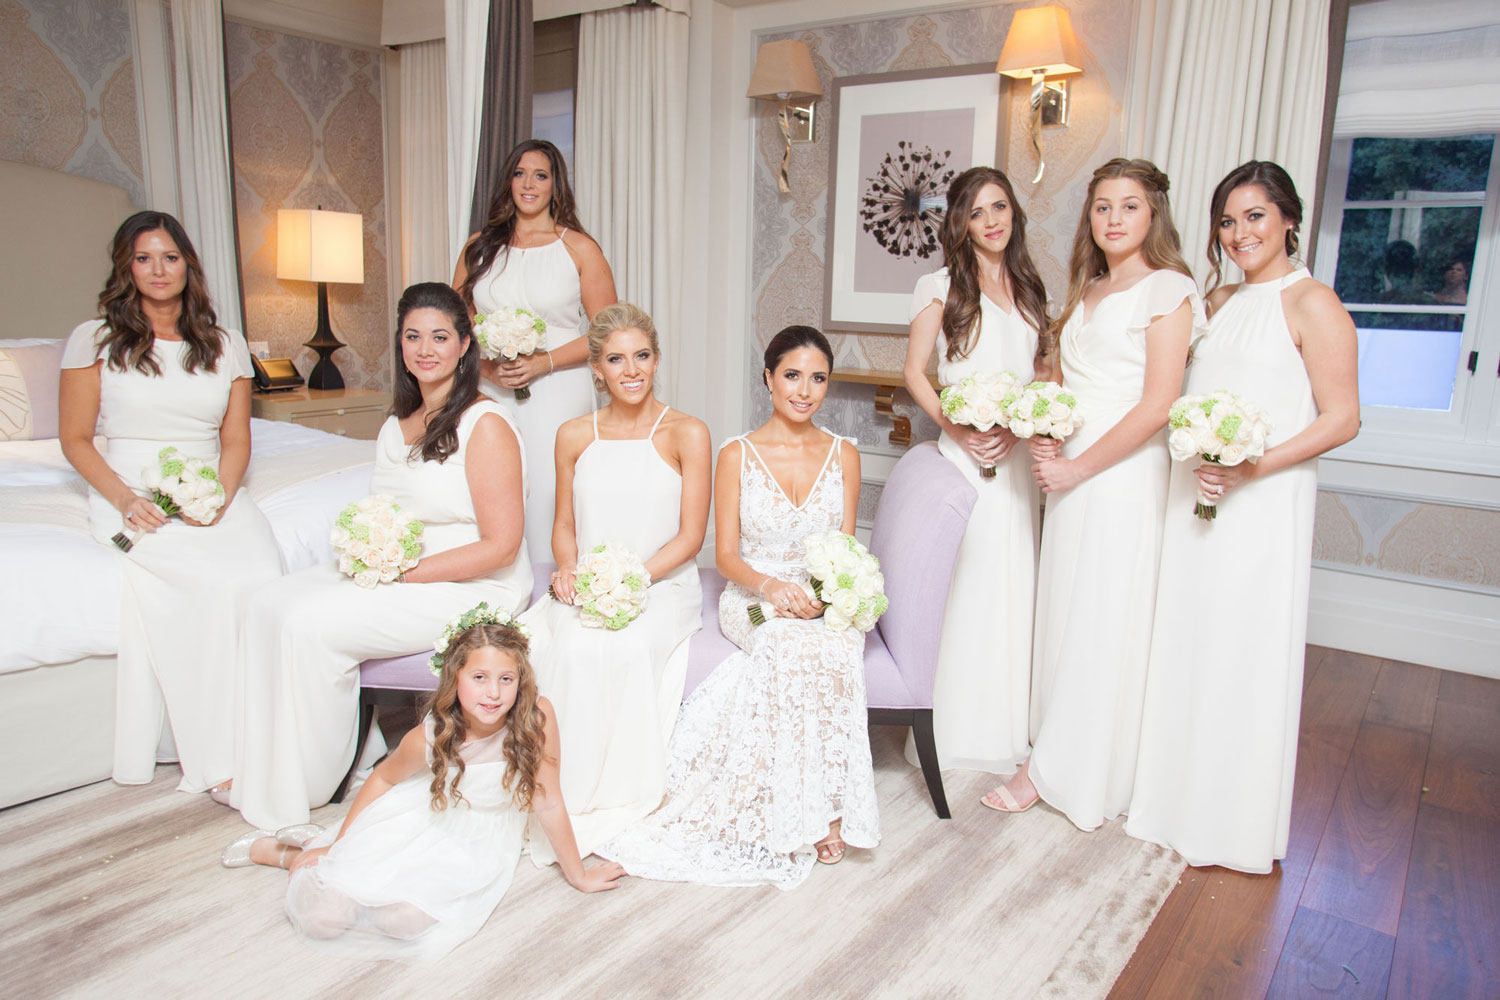 Bride in white dress and bridesmaids in white bridesmaid dresses in bridal suite